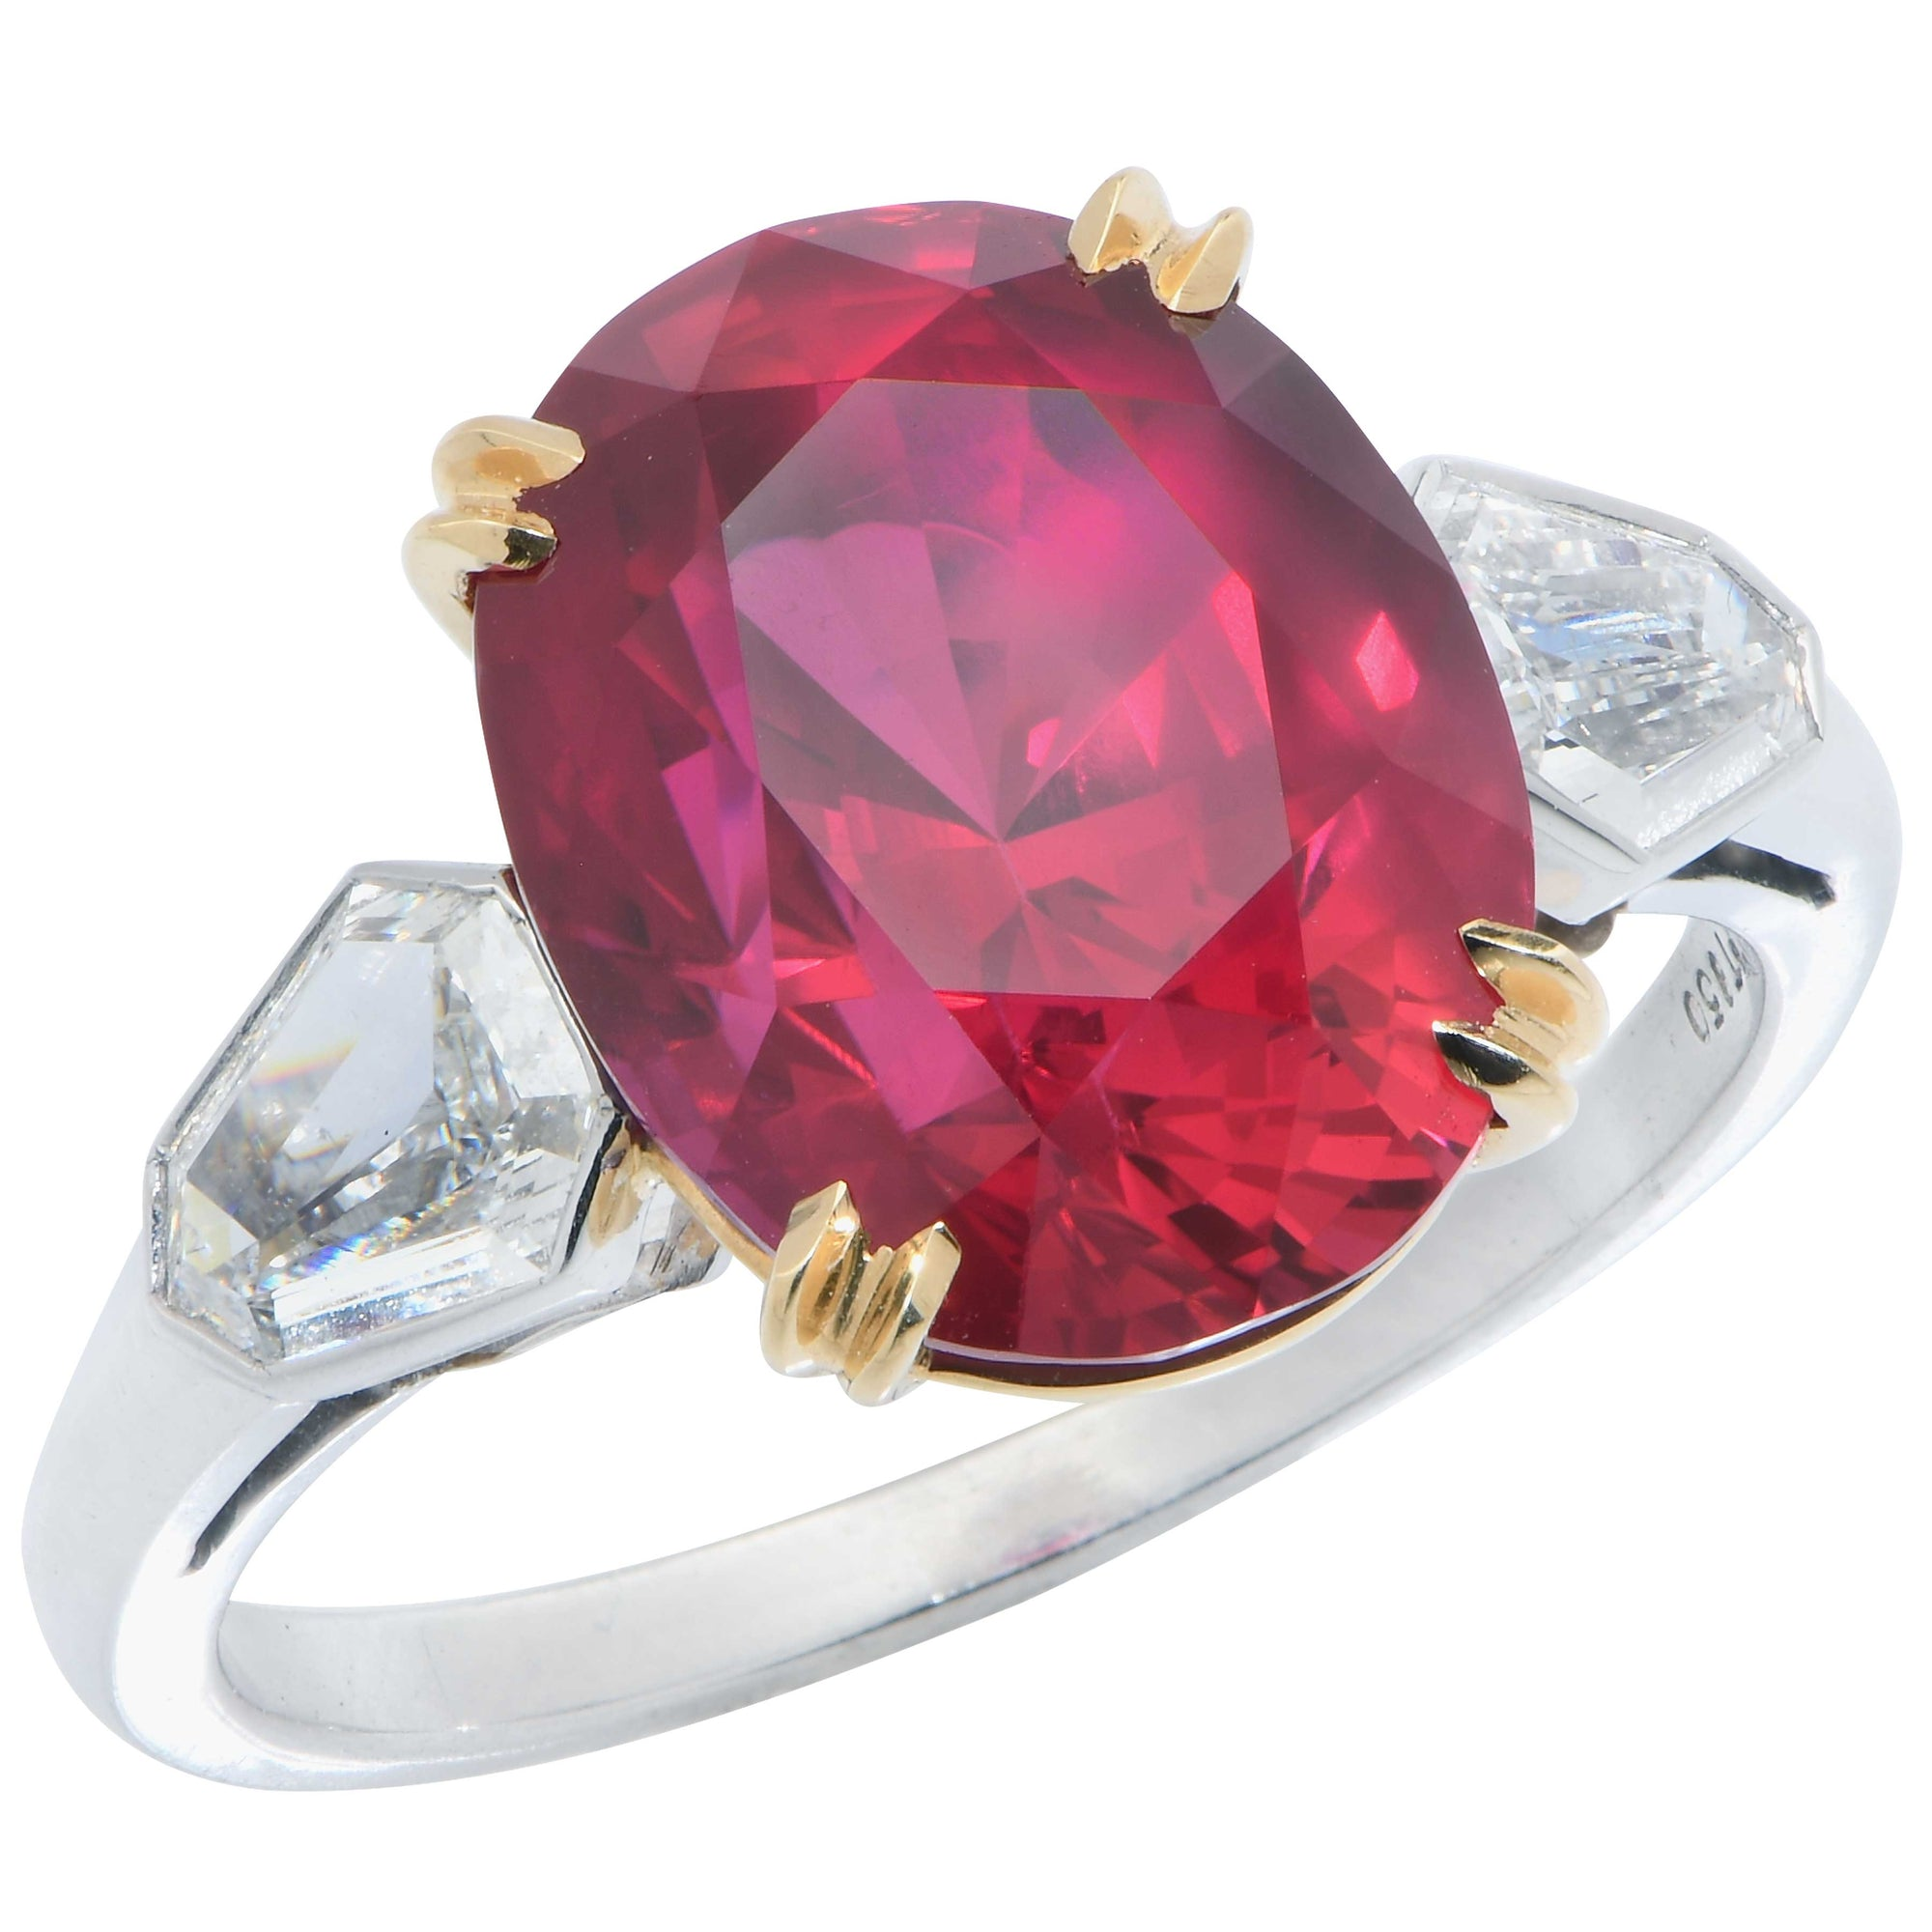 Mozambique Pigeon's Blood Ruby 7.47 Carat GRS Graded No Heat  and Diamond Ring